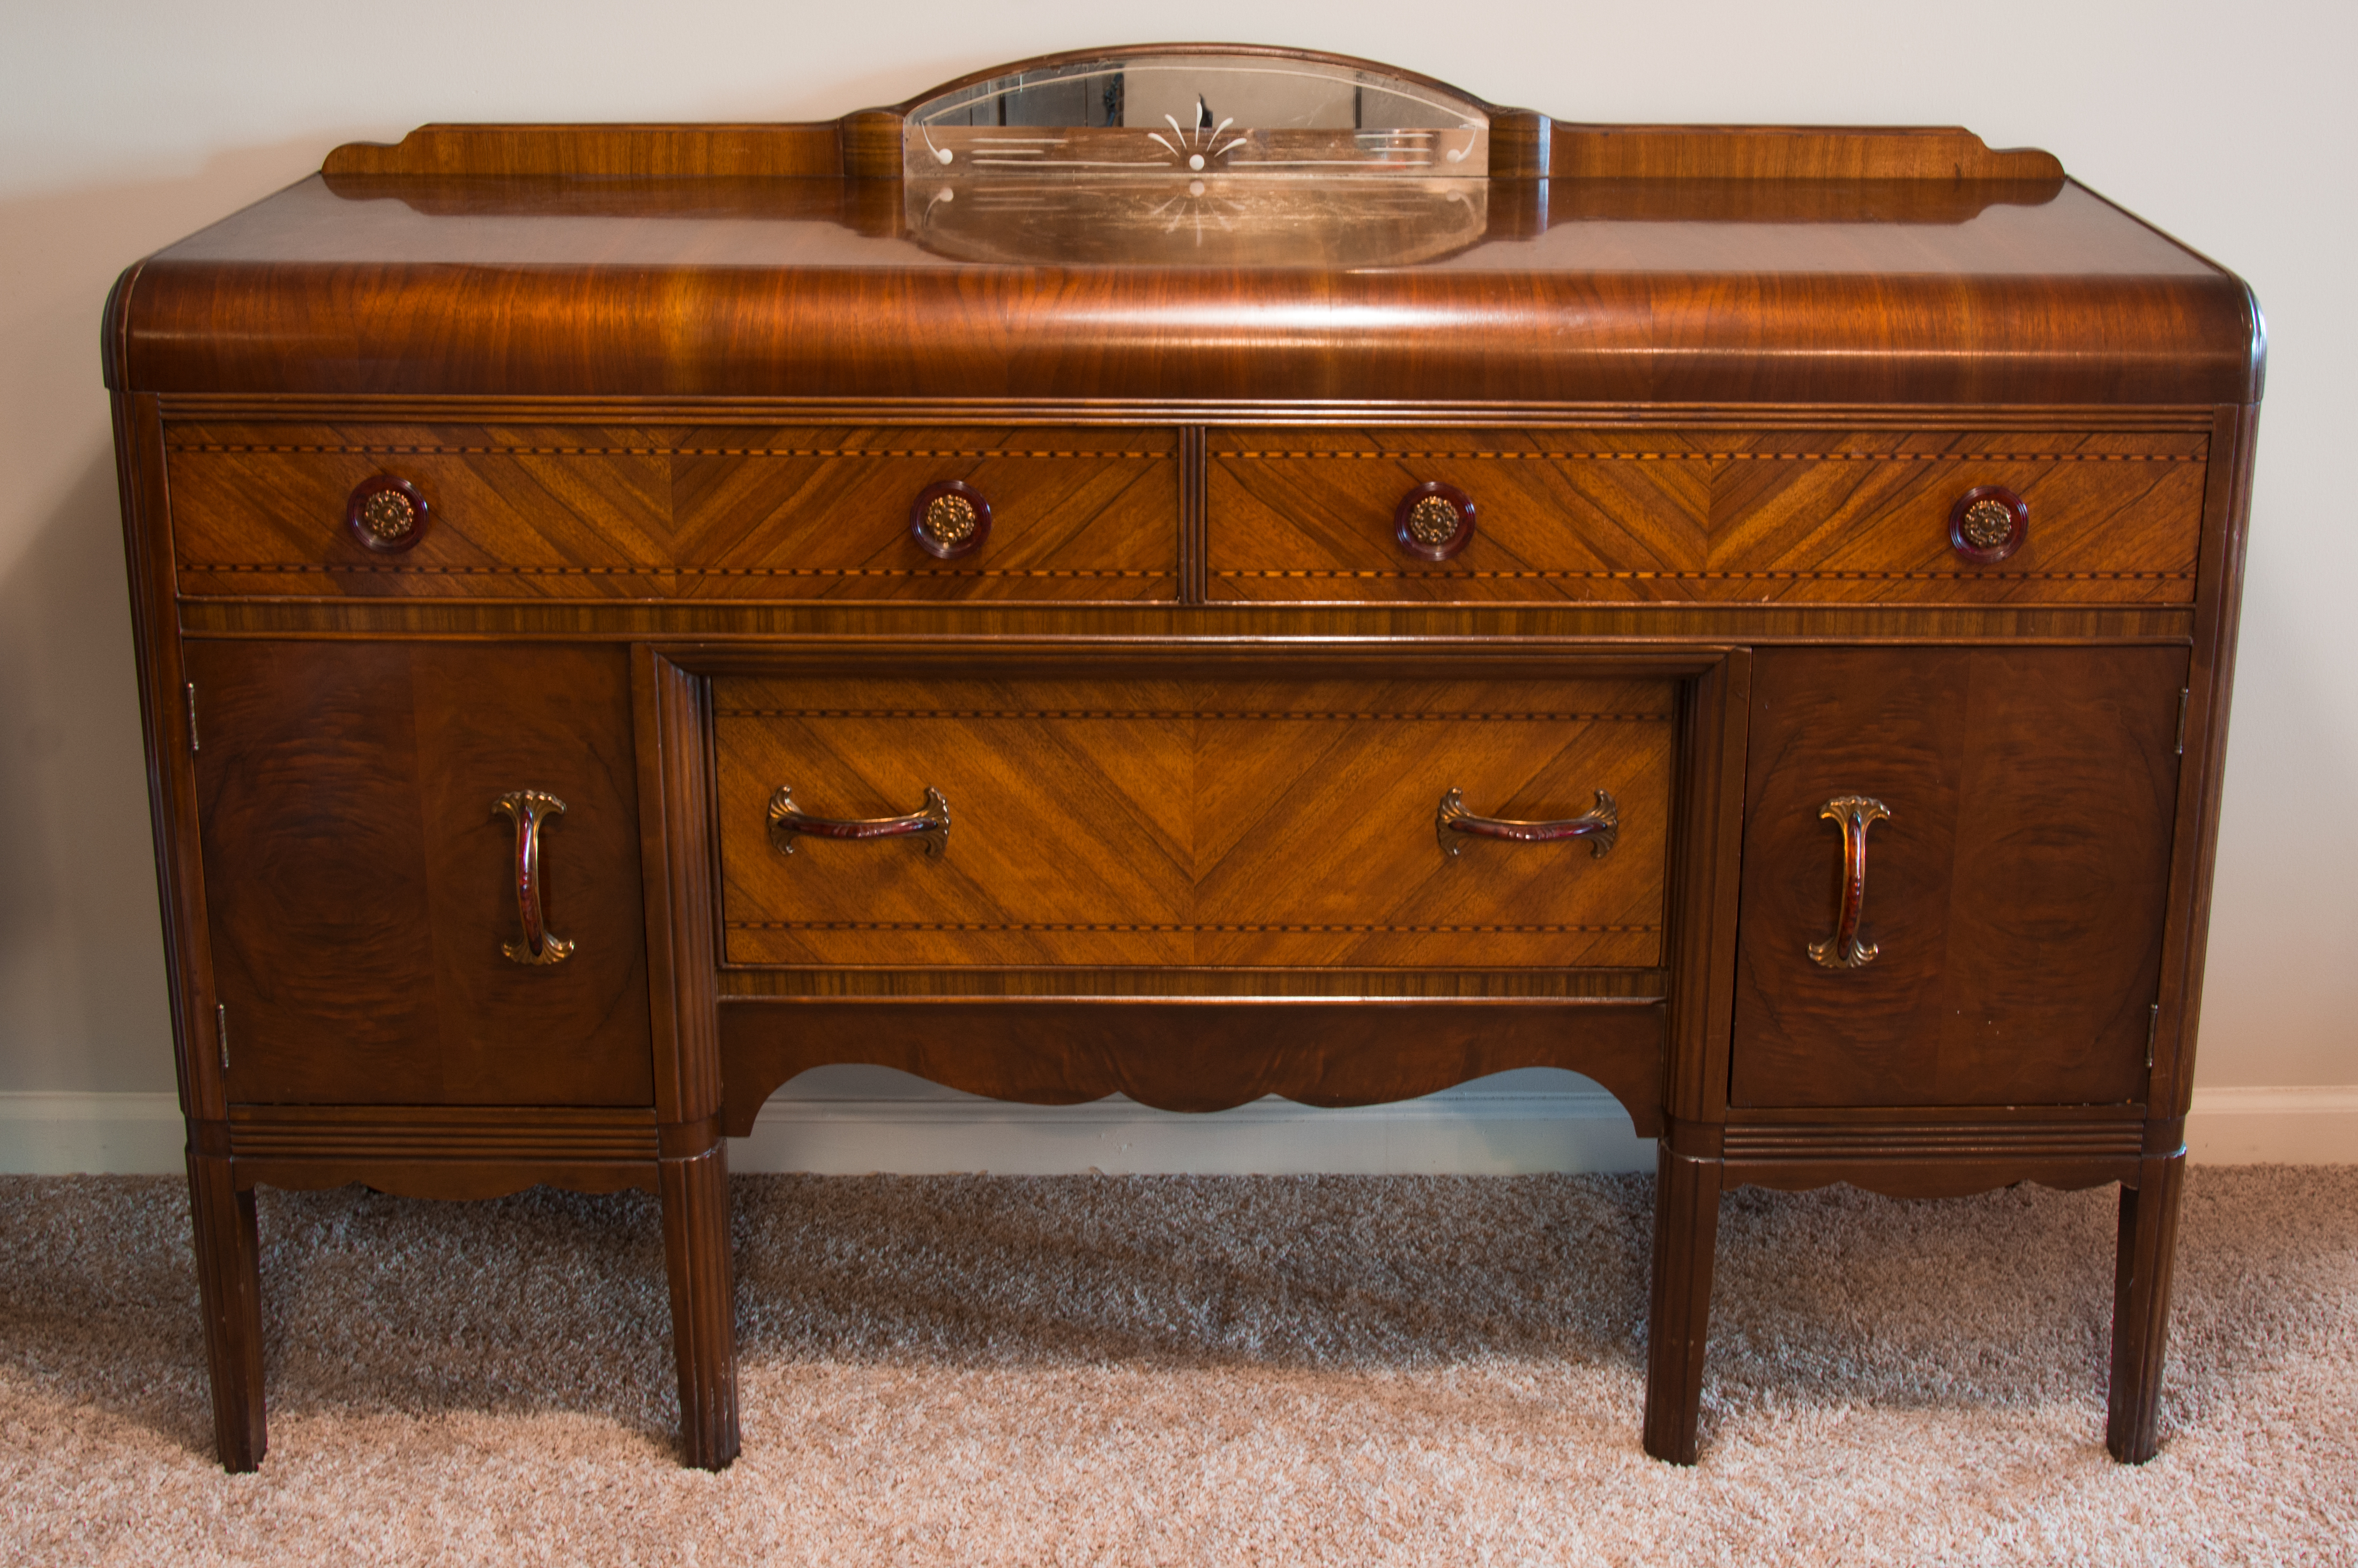 Inspiring Kitchen Credenza Dreams Island Sideboard Buffets throughout Amityville Wood Sideboards (Image 25 of 30)